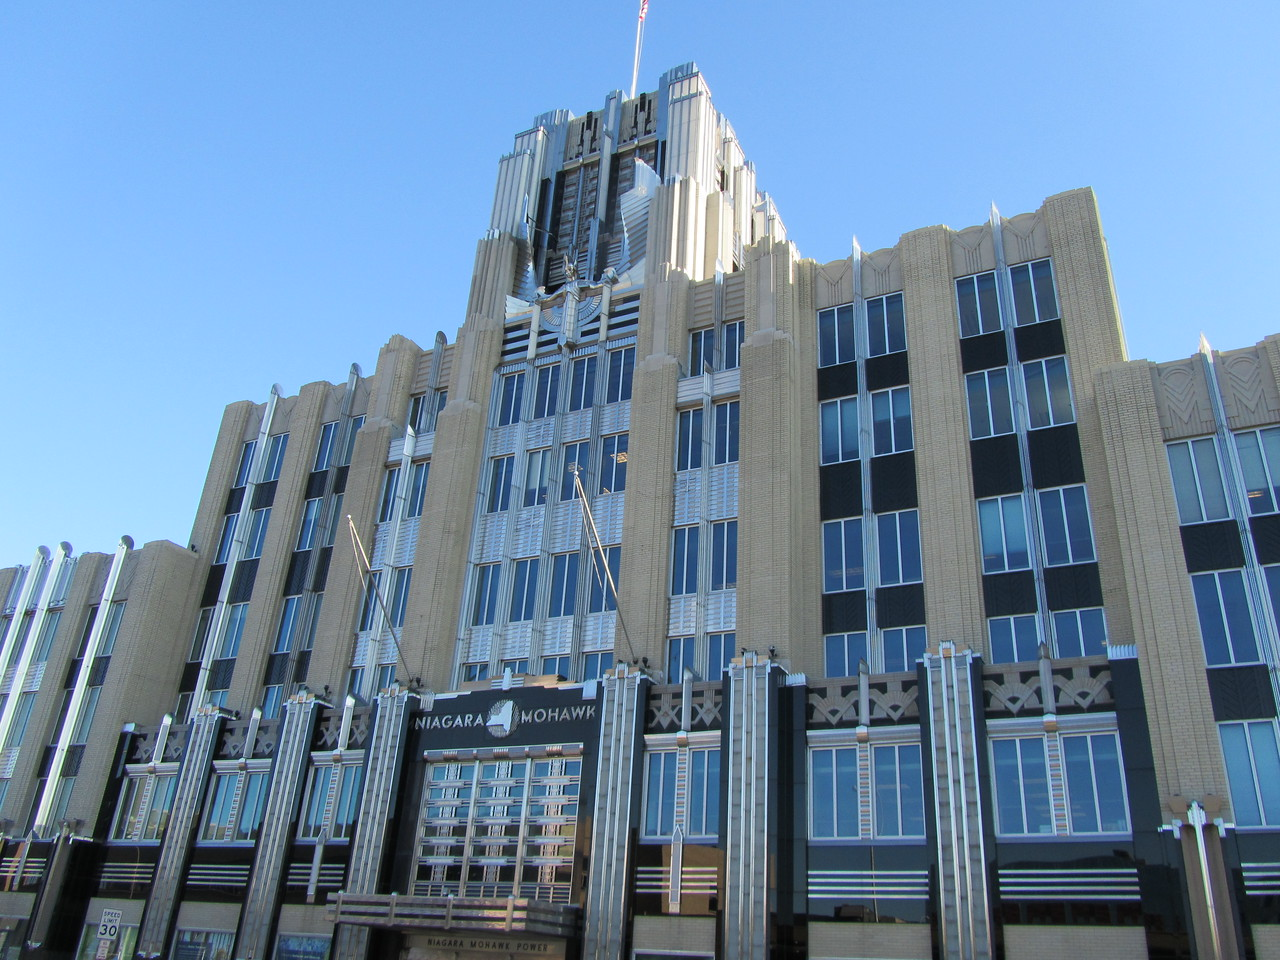 Art deco Niagara Mohawk power authority.